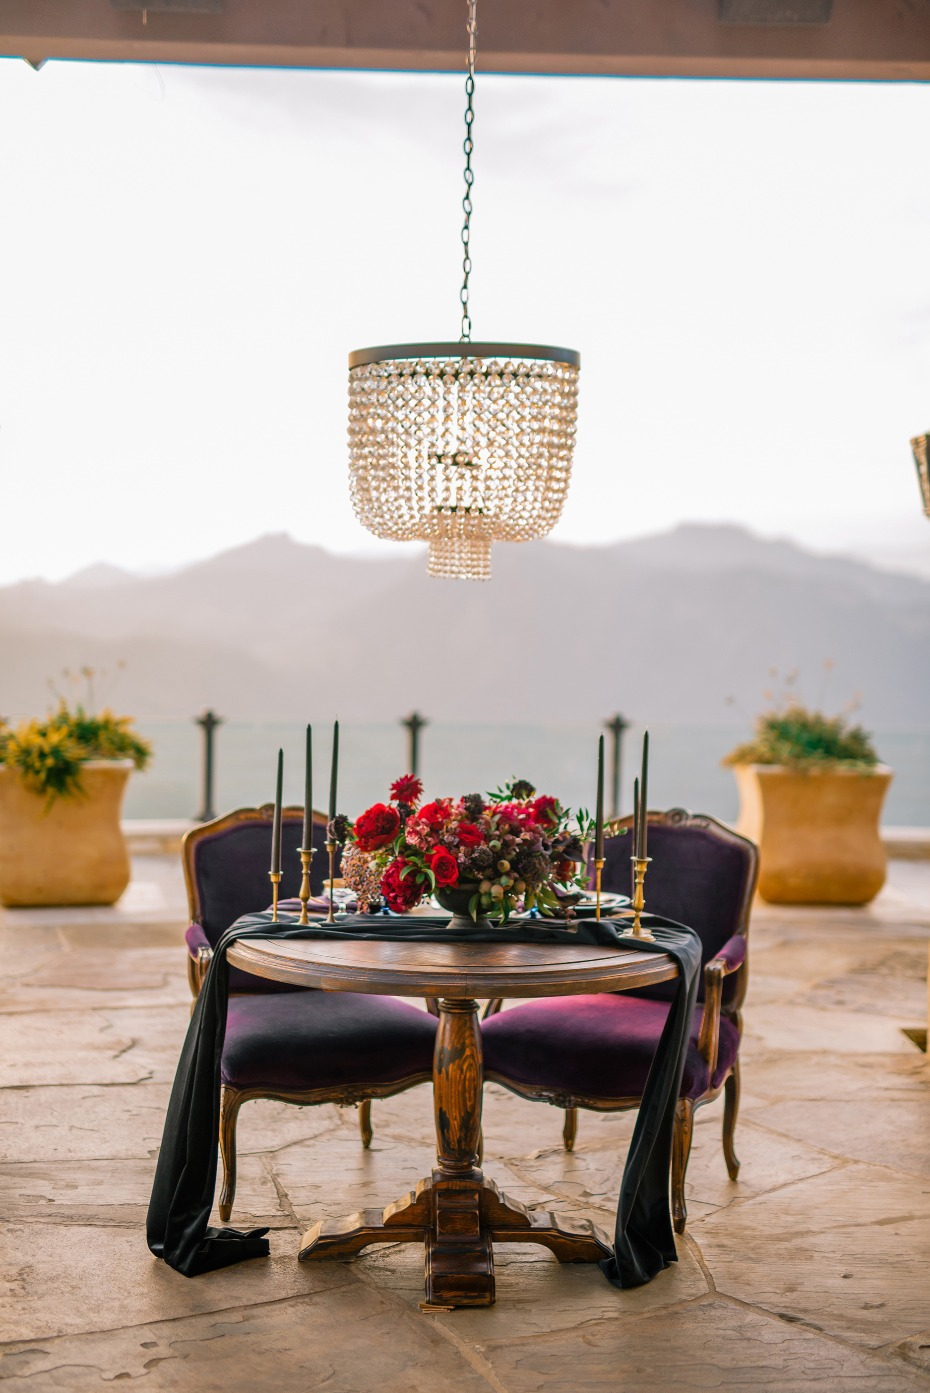 Jewel toned sweetheart table for two